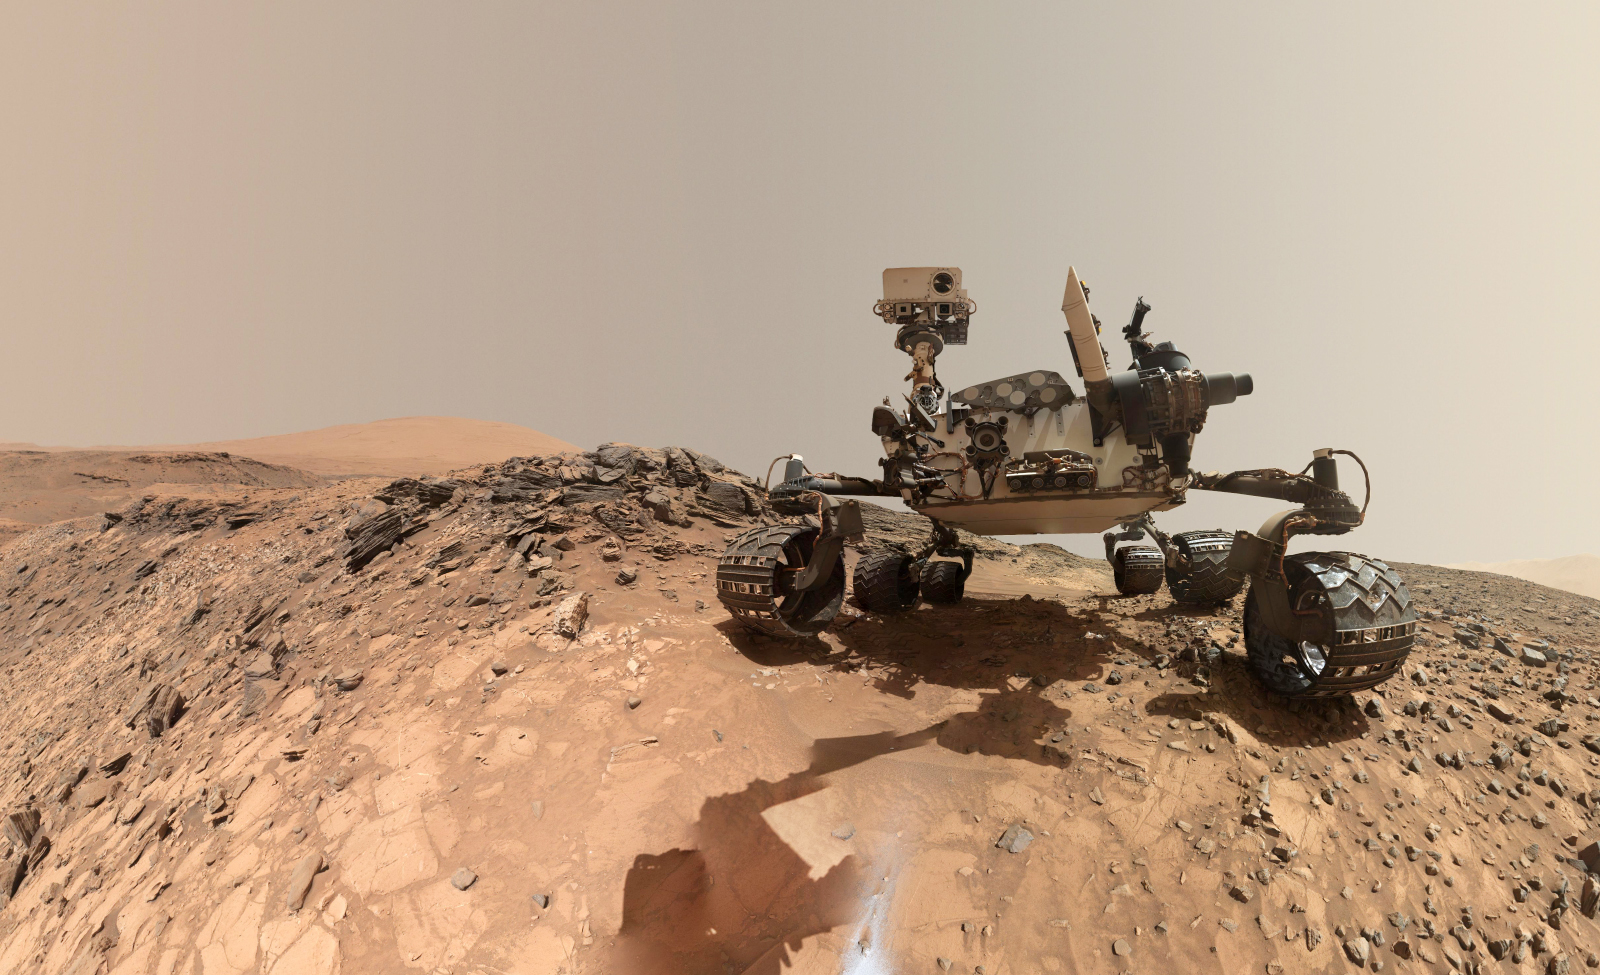 """This self-portrait of NASA's Curiosity Mars rover (created by stitching two images together and removing the rover's arm) shows the vehicle at the site from which it reached down to drill into a rock target called """"Buckskin"""" on lower Mount Sharp."""